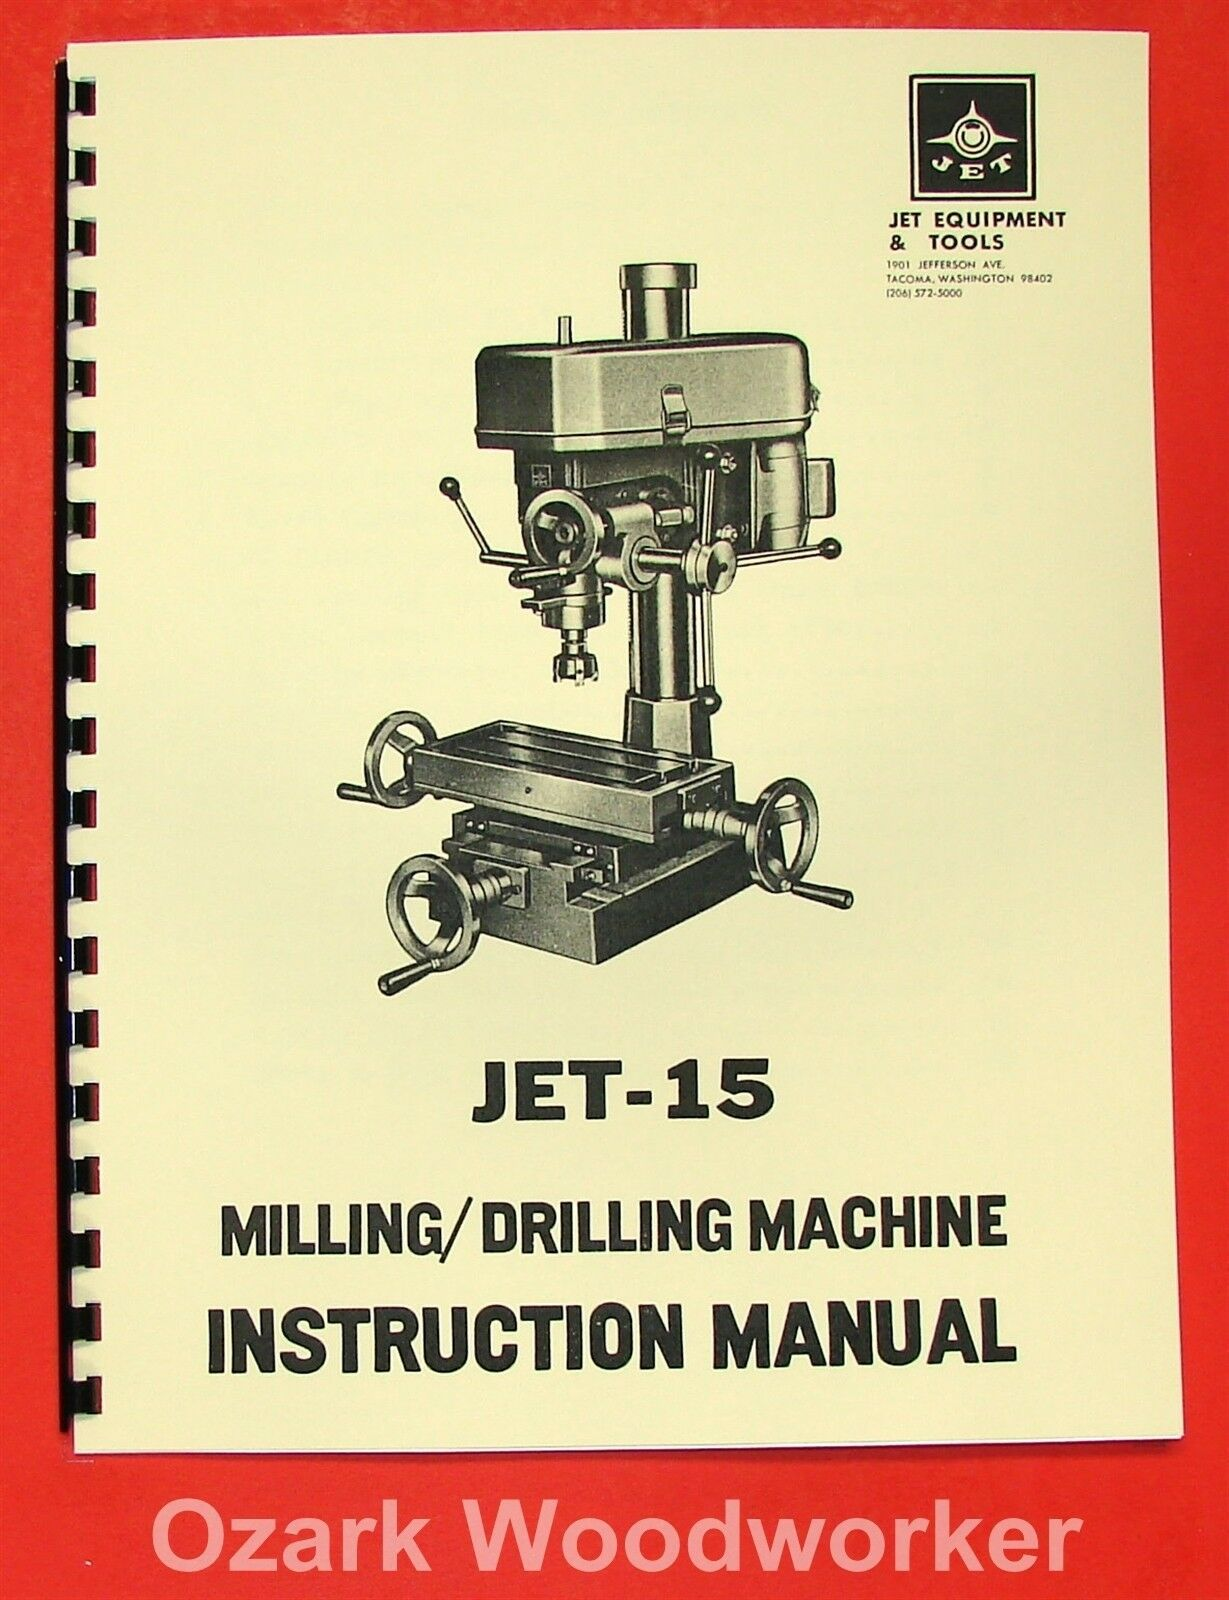 15 Drill Mill Parts Manual Asian Complex Enco Msc 0775 1750 Lathe Wiring Diagram 1 Of 2free Shipping